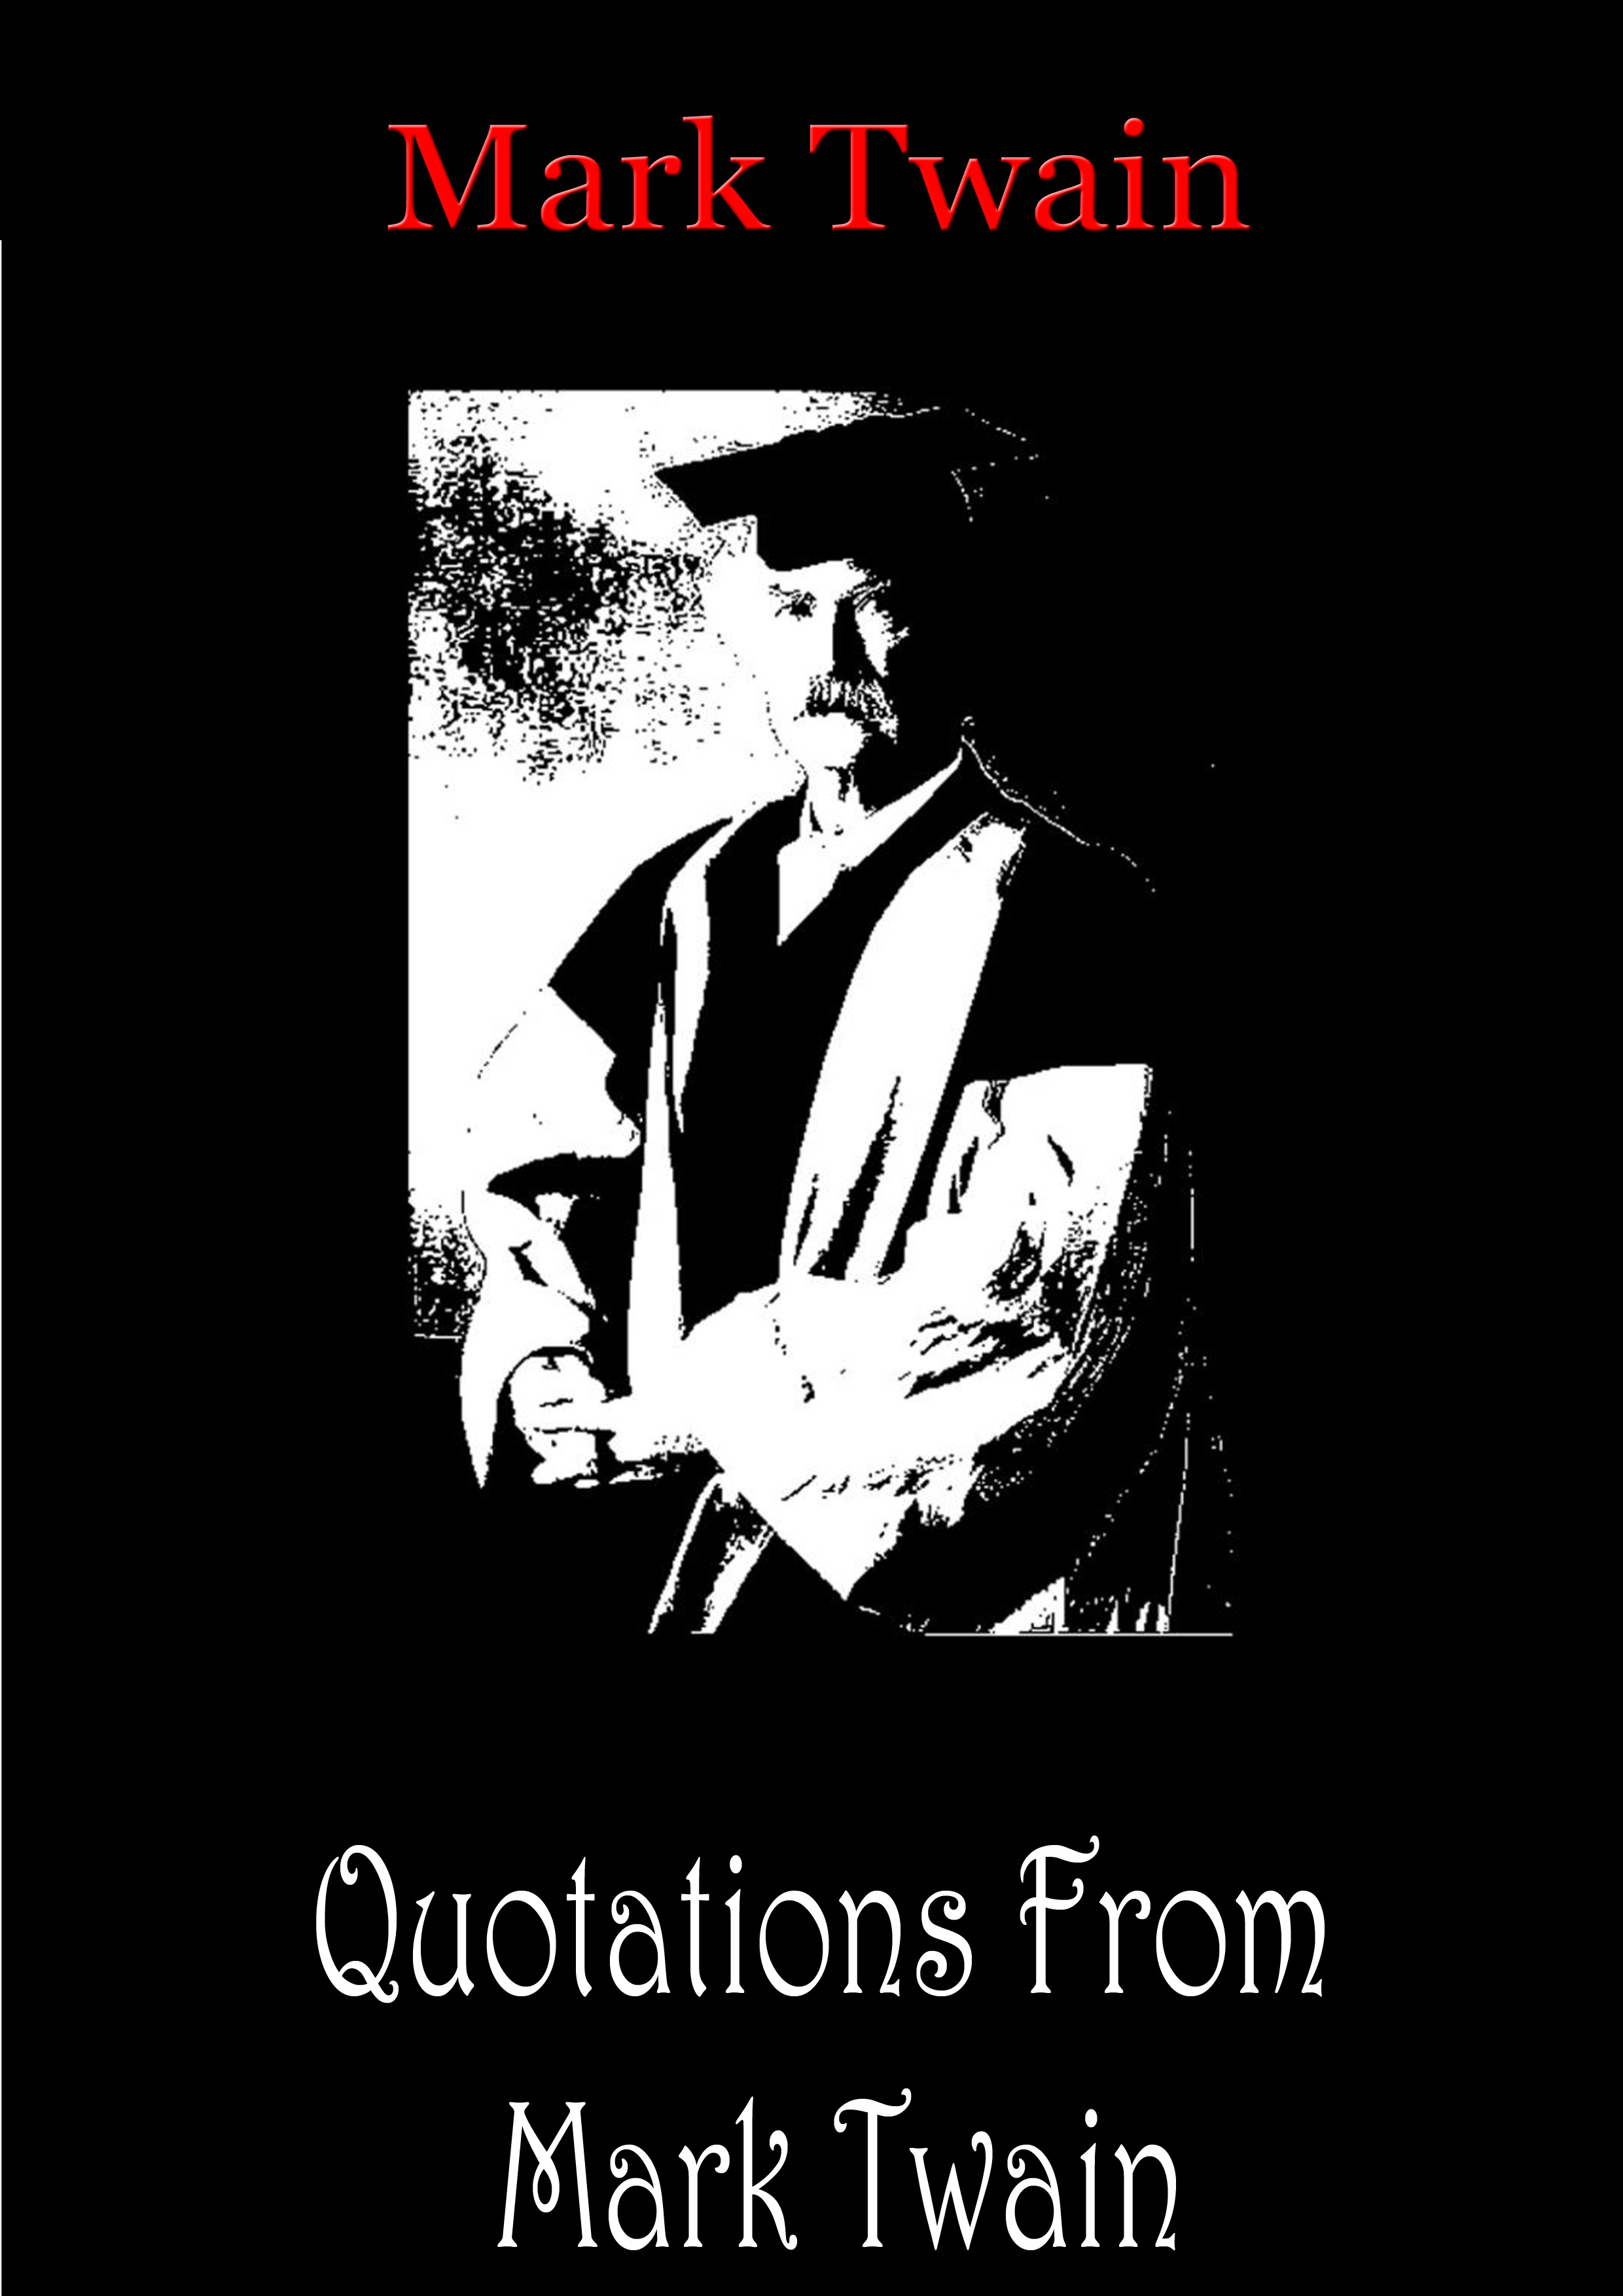 Quotations From Mark Twain By: Mark Twain